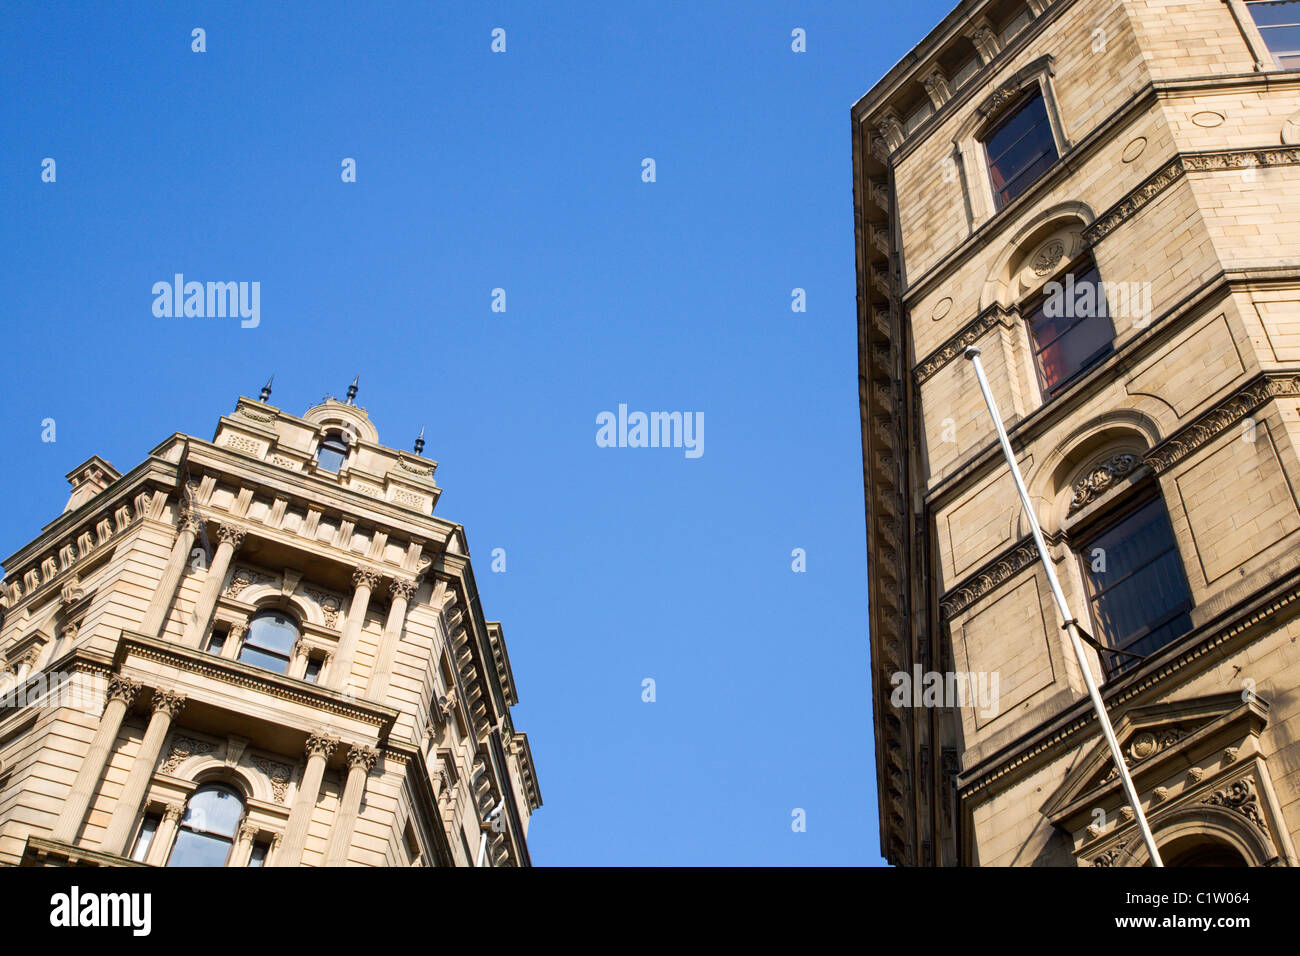 Law Russell and American and Chinese Export Warehouses Bradford - Stock Image